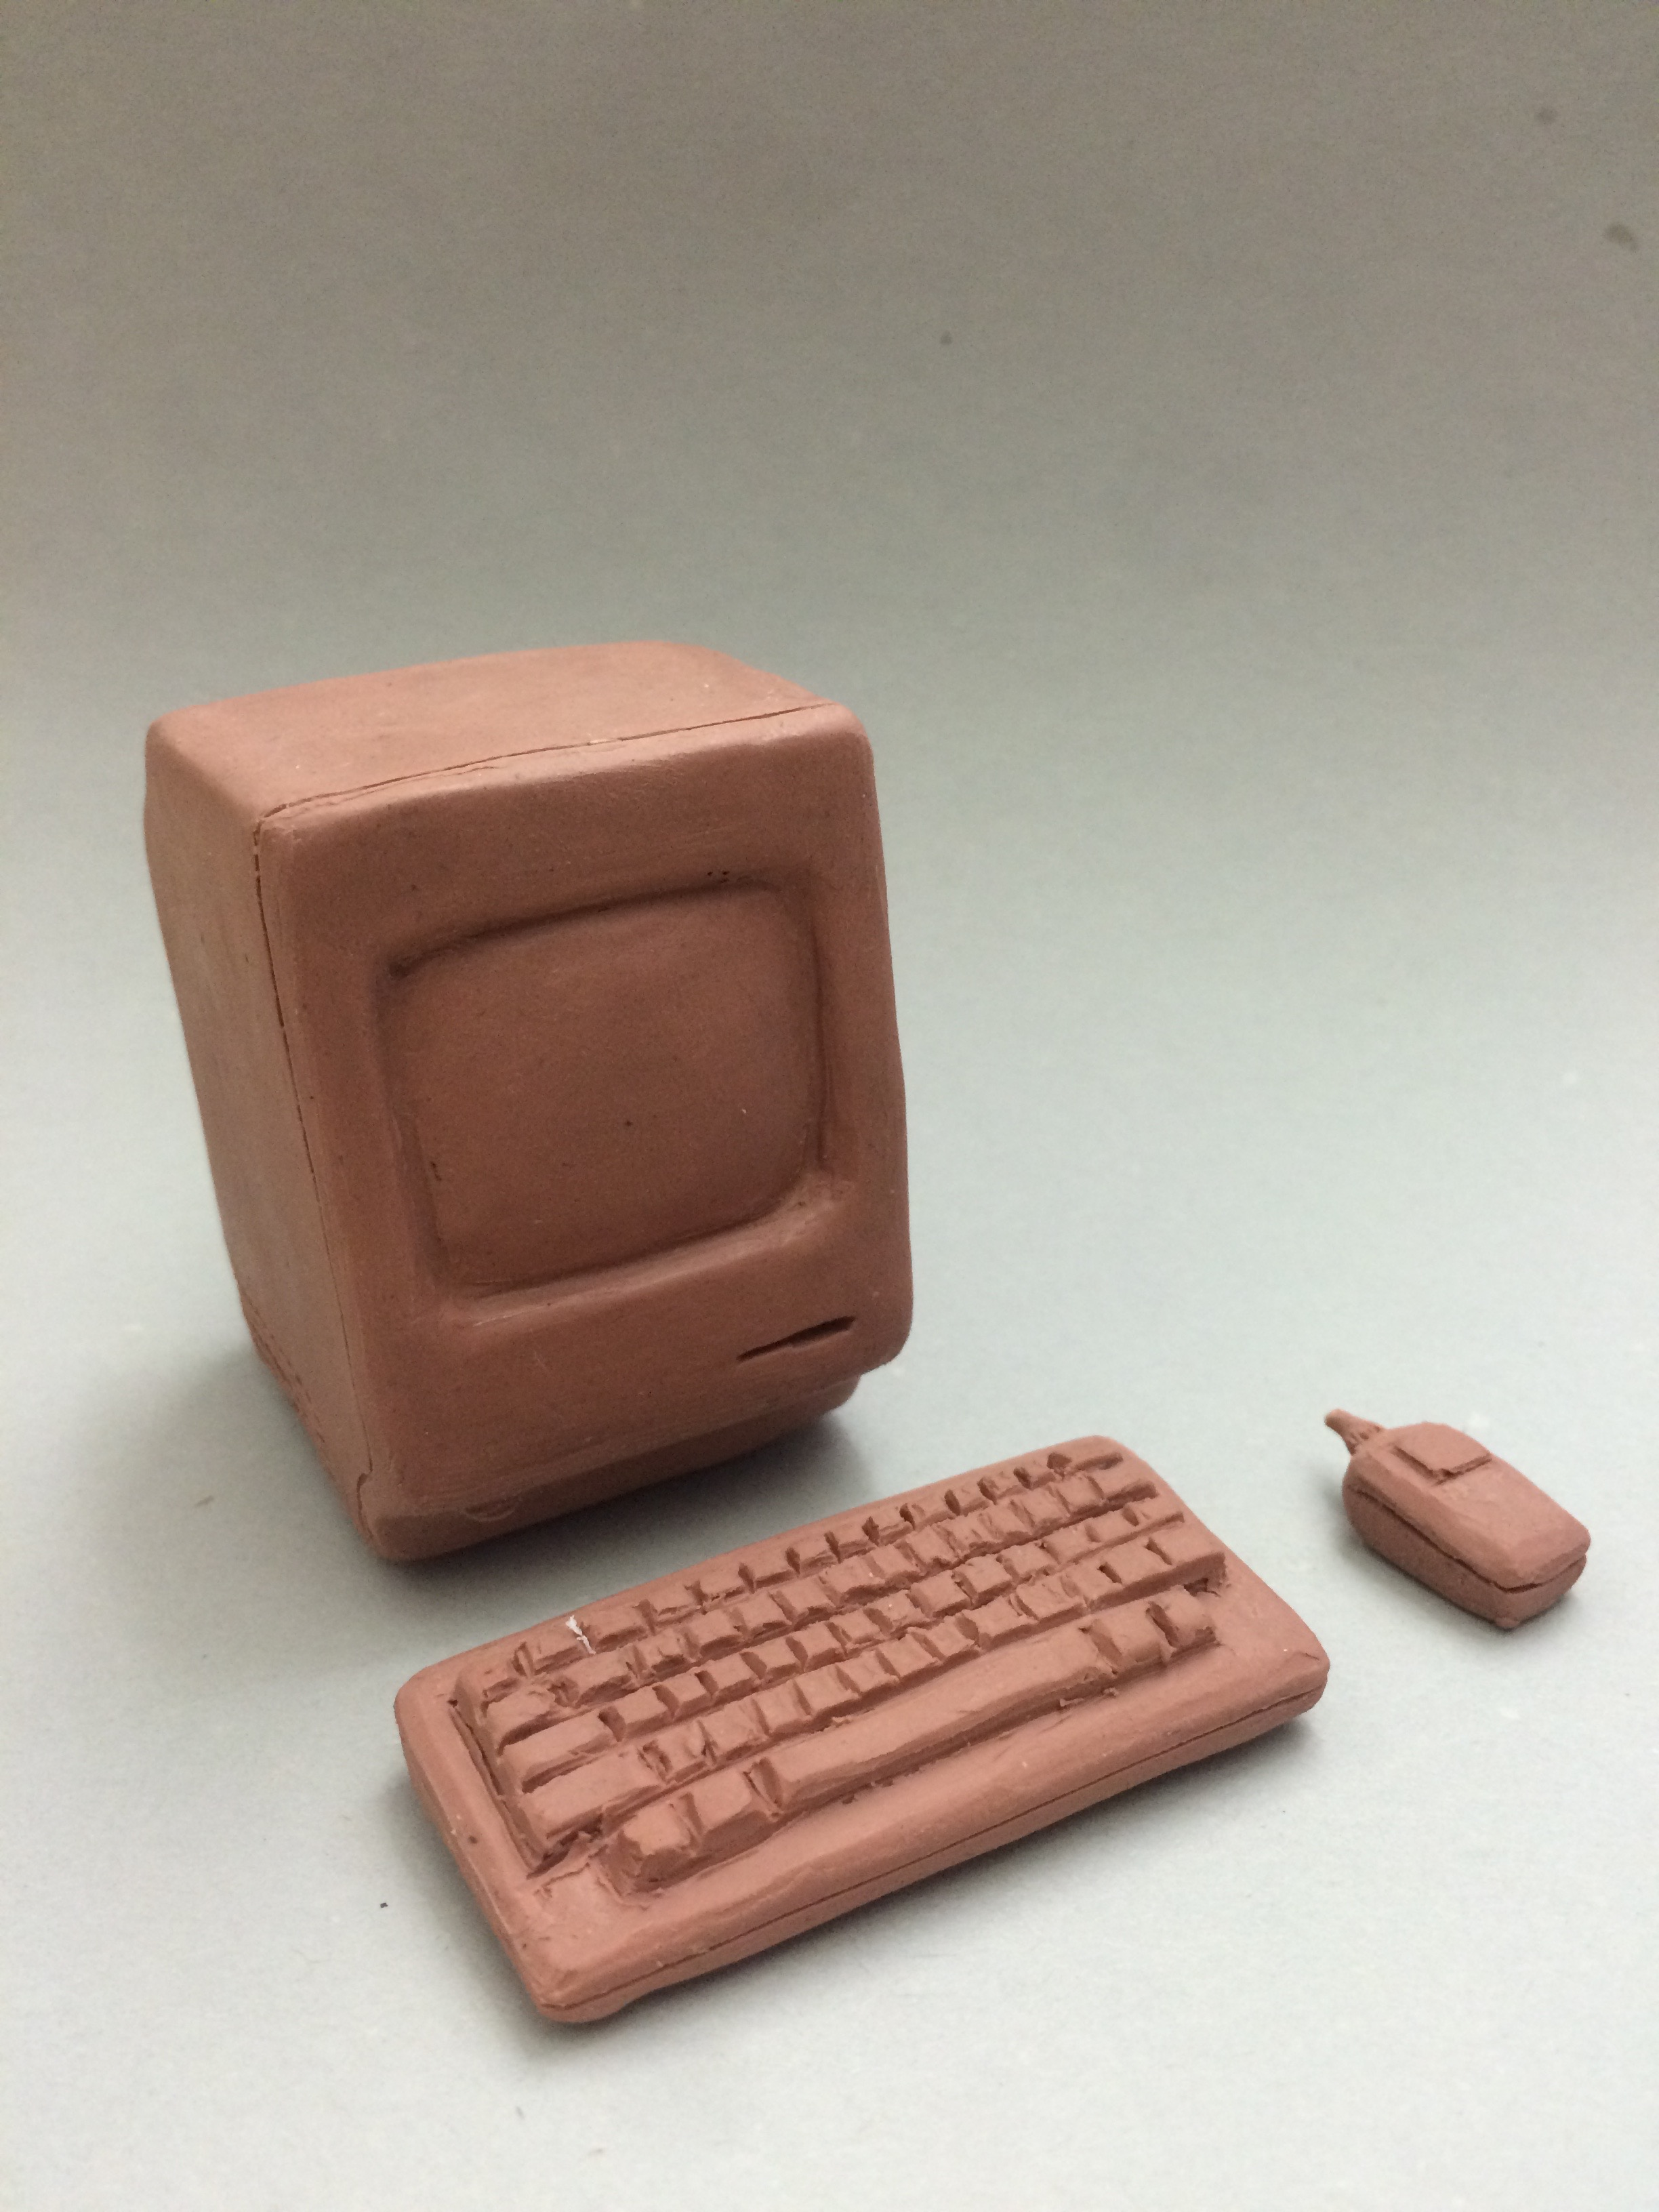 Macintosh Classic ii, a beautiful classic from 1991.